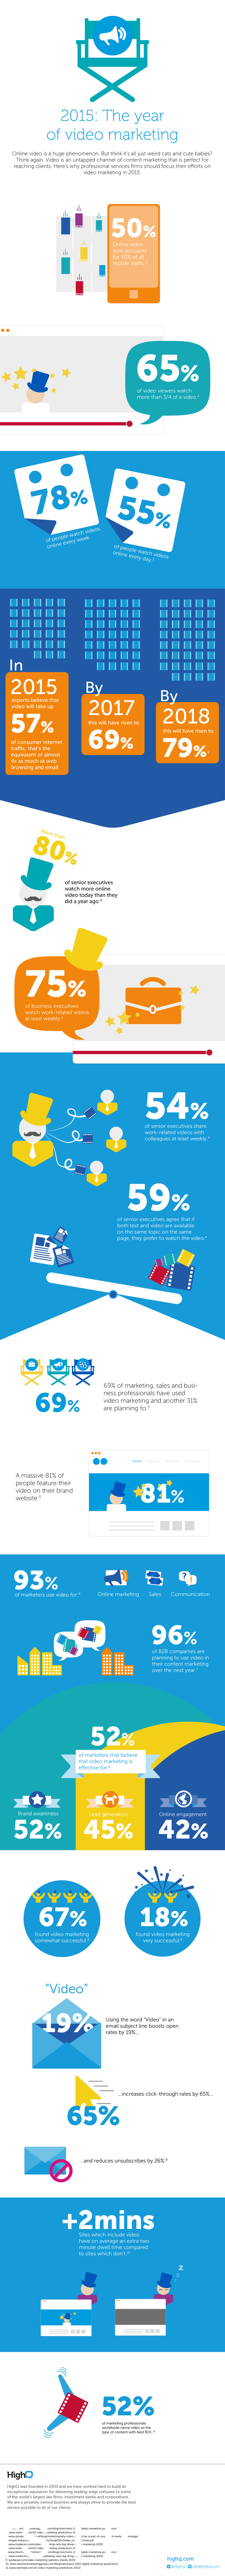 infographic Marketing VideoMarketing